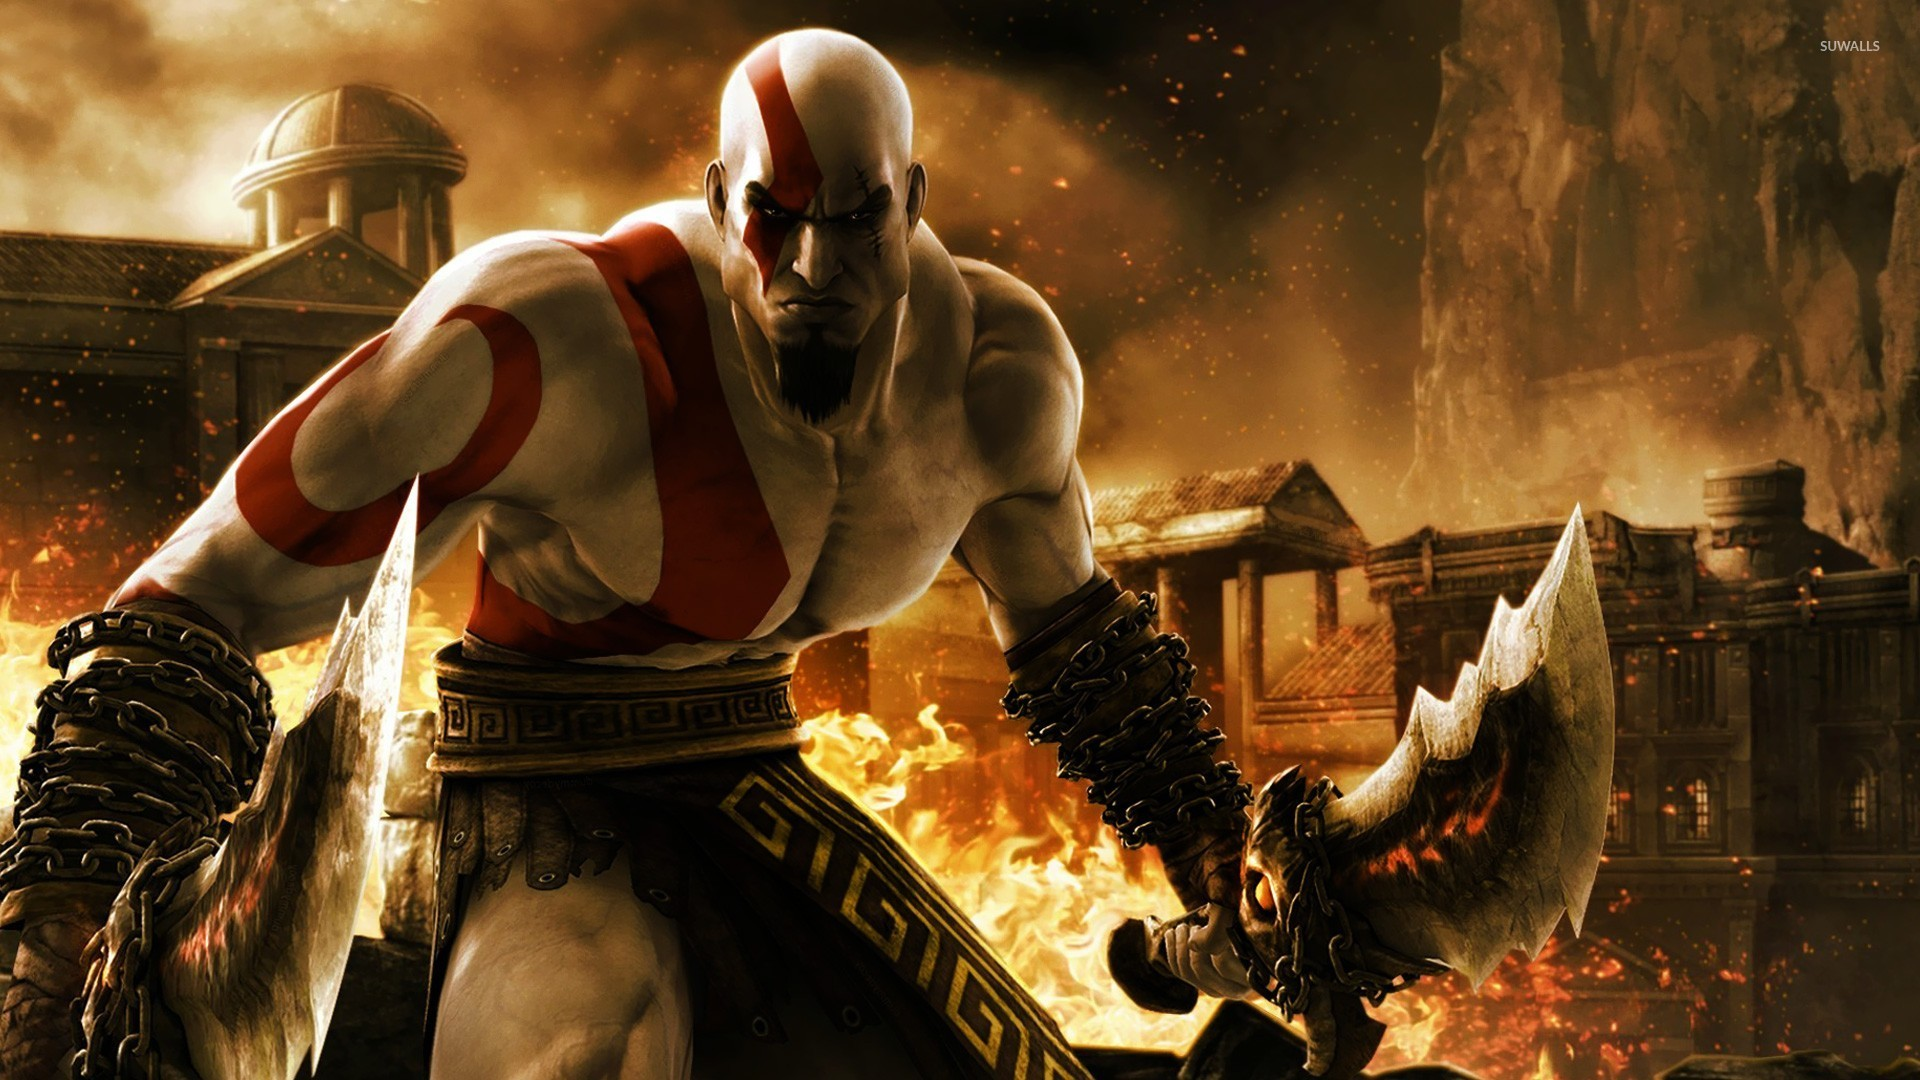 God Of War Battle Wallpaper Game Wallpapers 54523